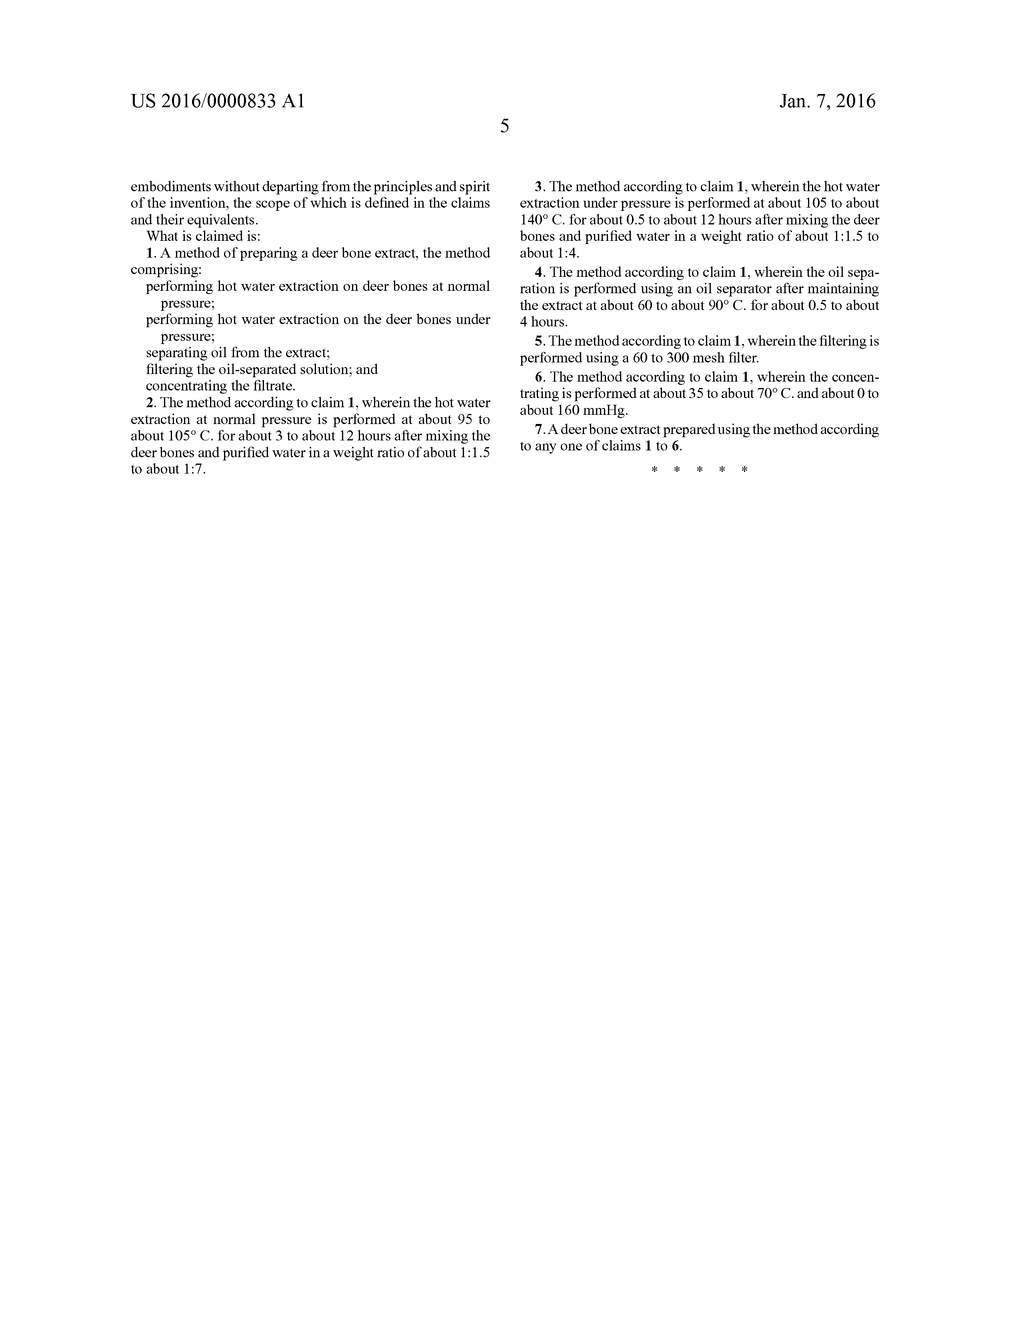 METHOD OF PREPARING DEER BONE EXTRACT HAVING INCREASED AMOUNT OF     GANGLIOSIDE - diagram, schematic, and image 14